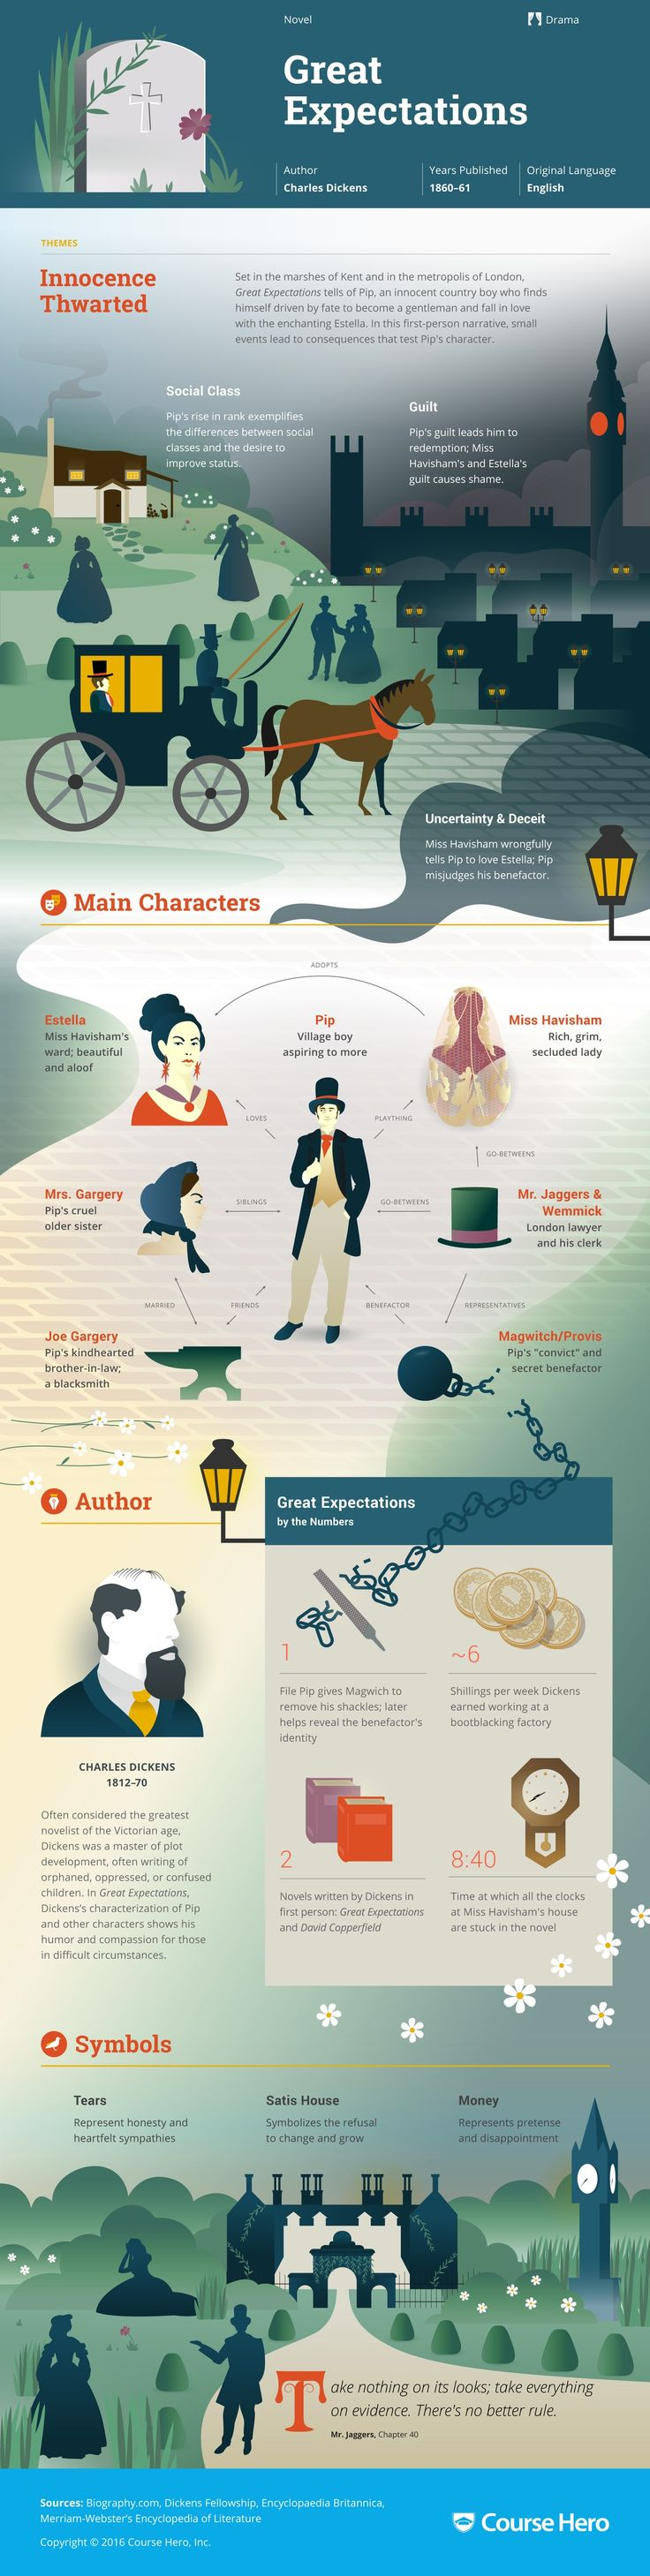 best ideas about great expectations great great expectations infographic course hero